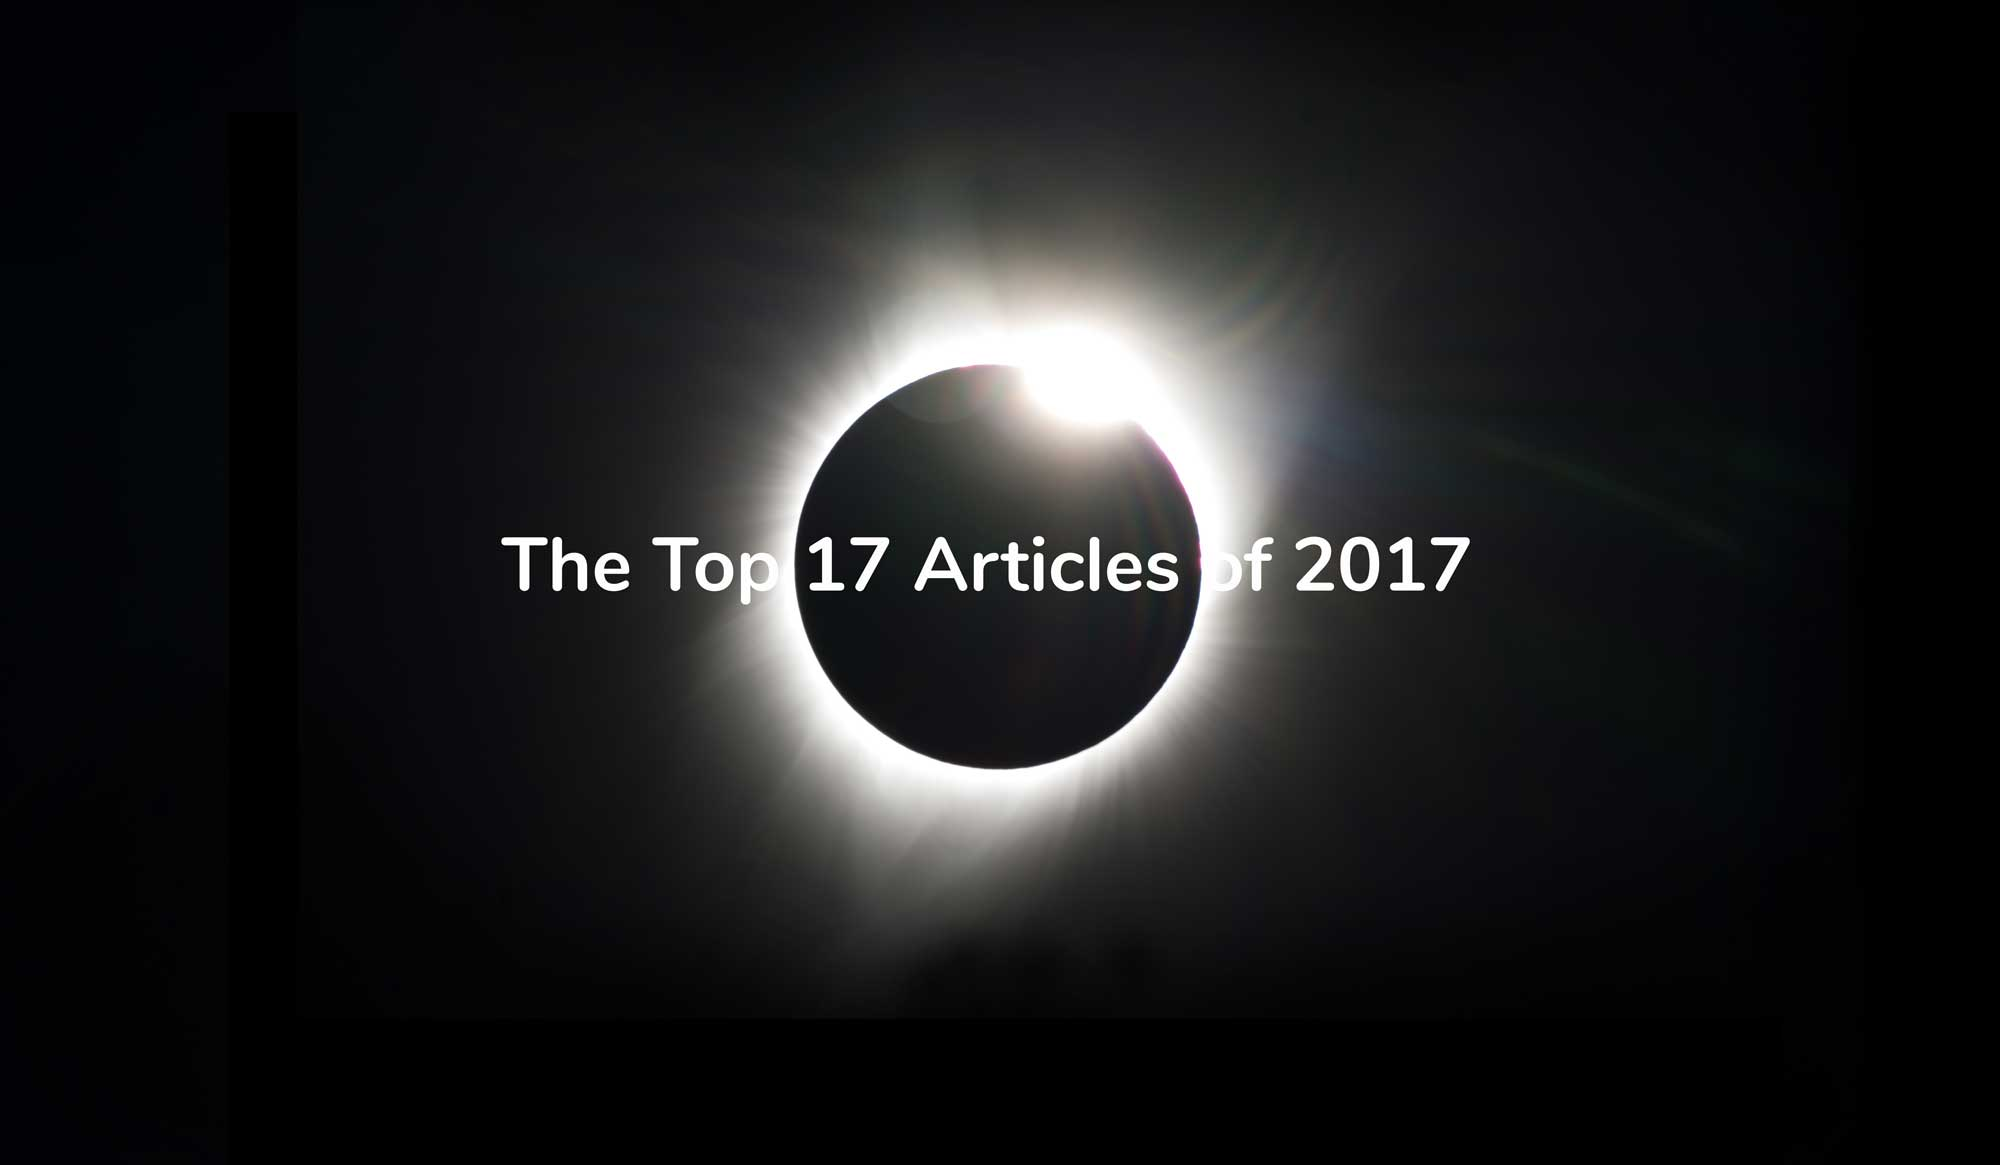 Our 17 Most Popular Posts of 2017